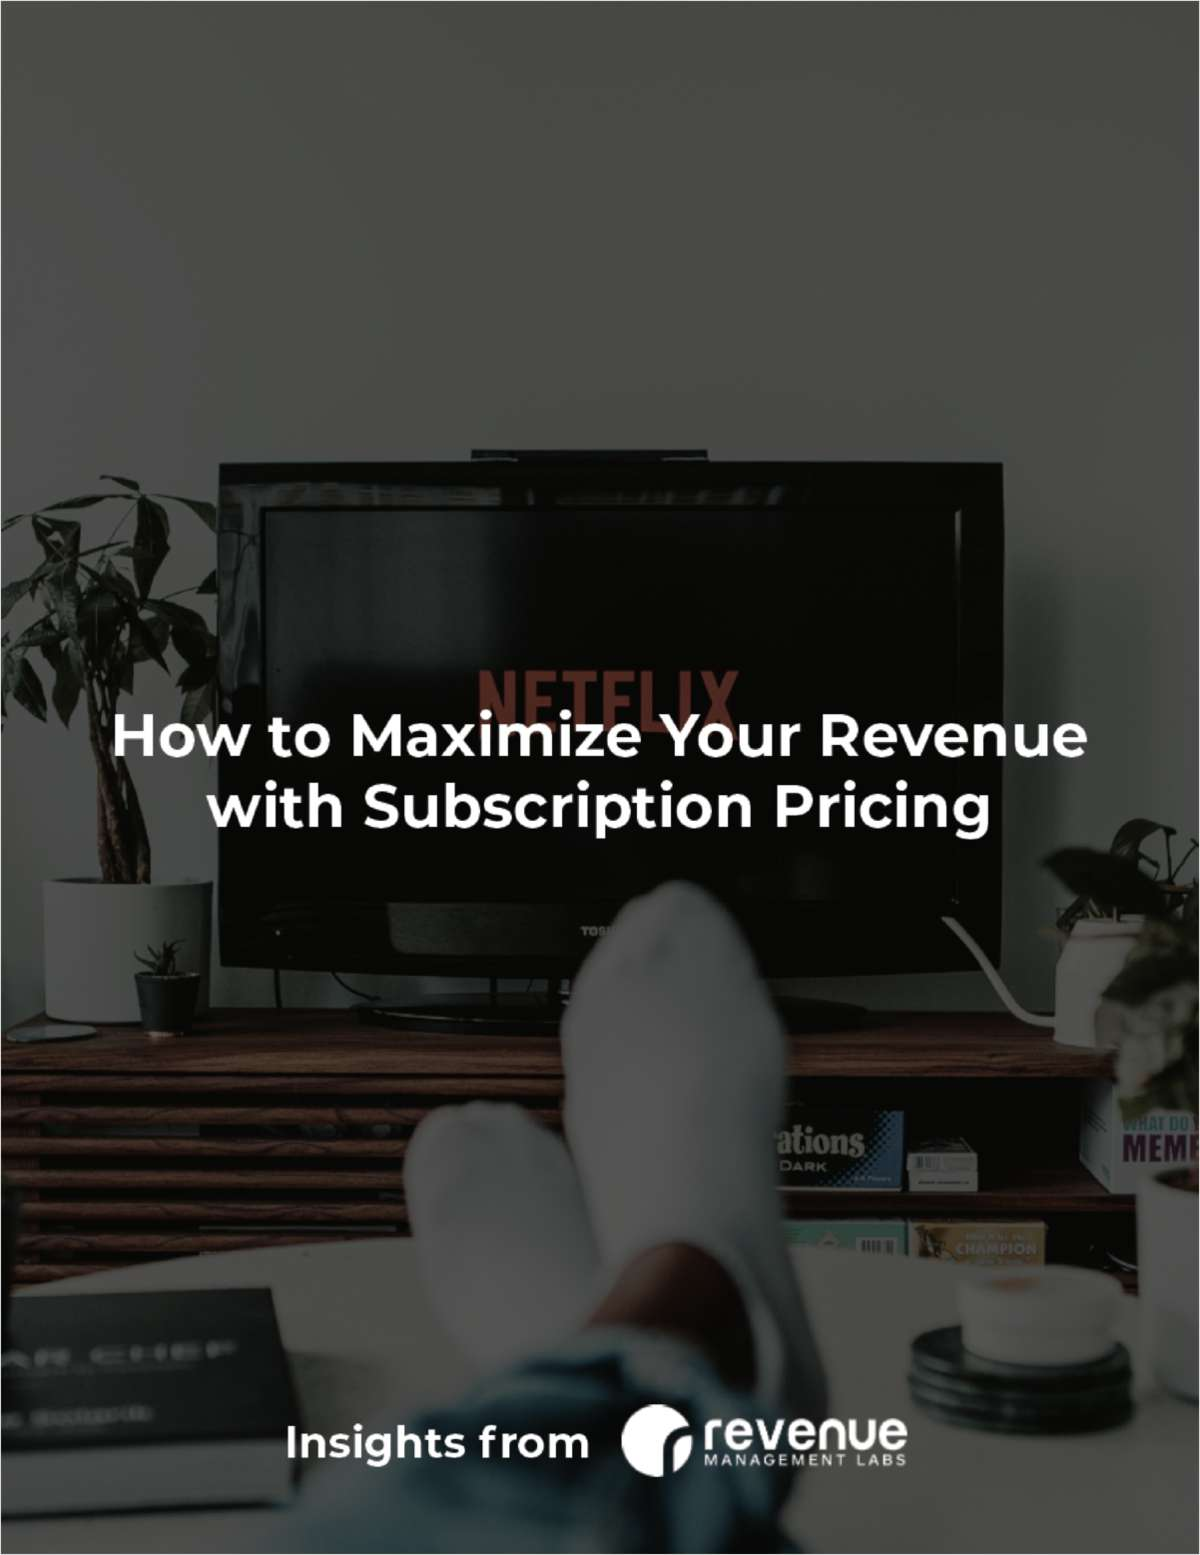 How to Maximize Your Revenue with Subscription Pricing